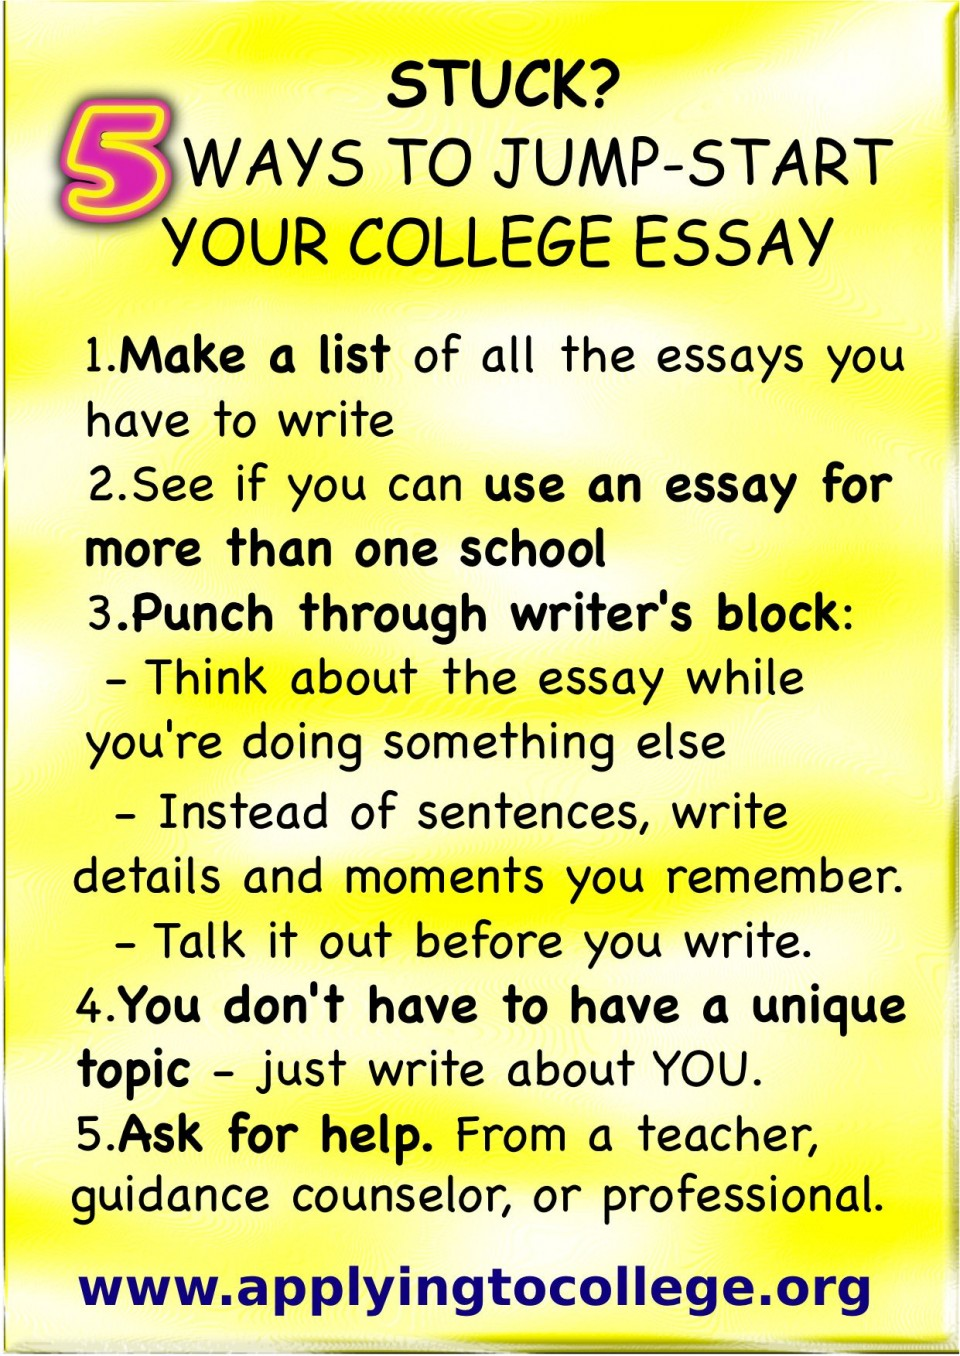 017 Writing College Application Essays Essay Marvelous Tips For Level Admission Sample Guide To 960